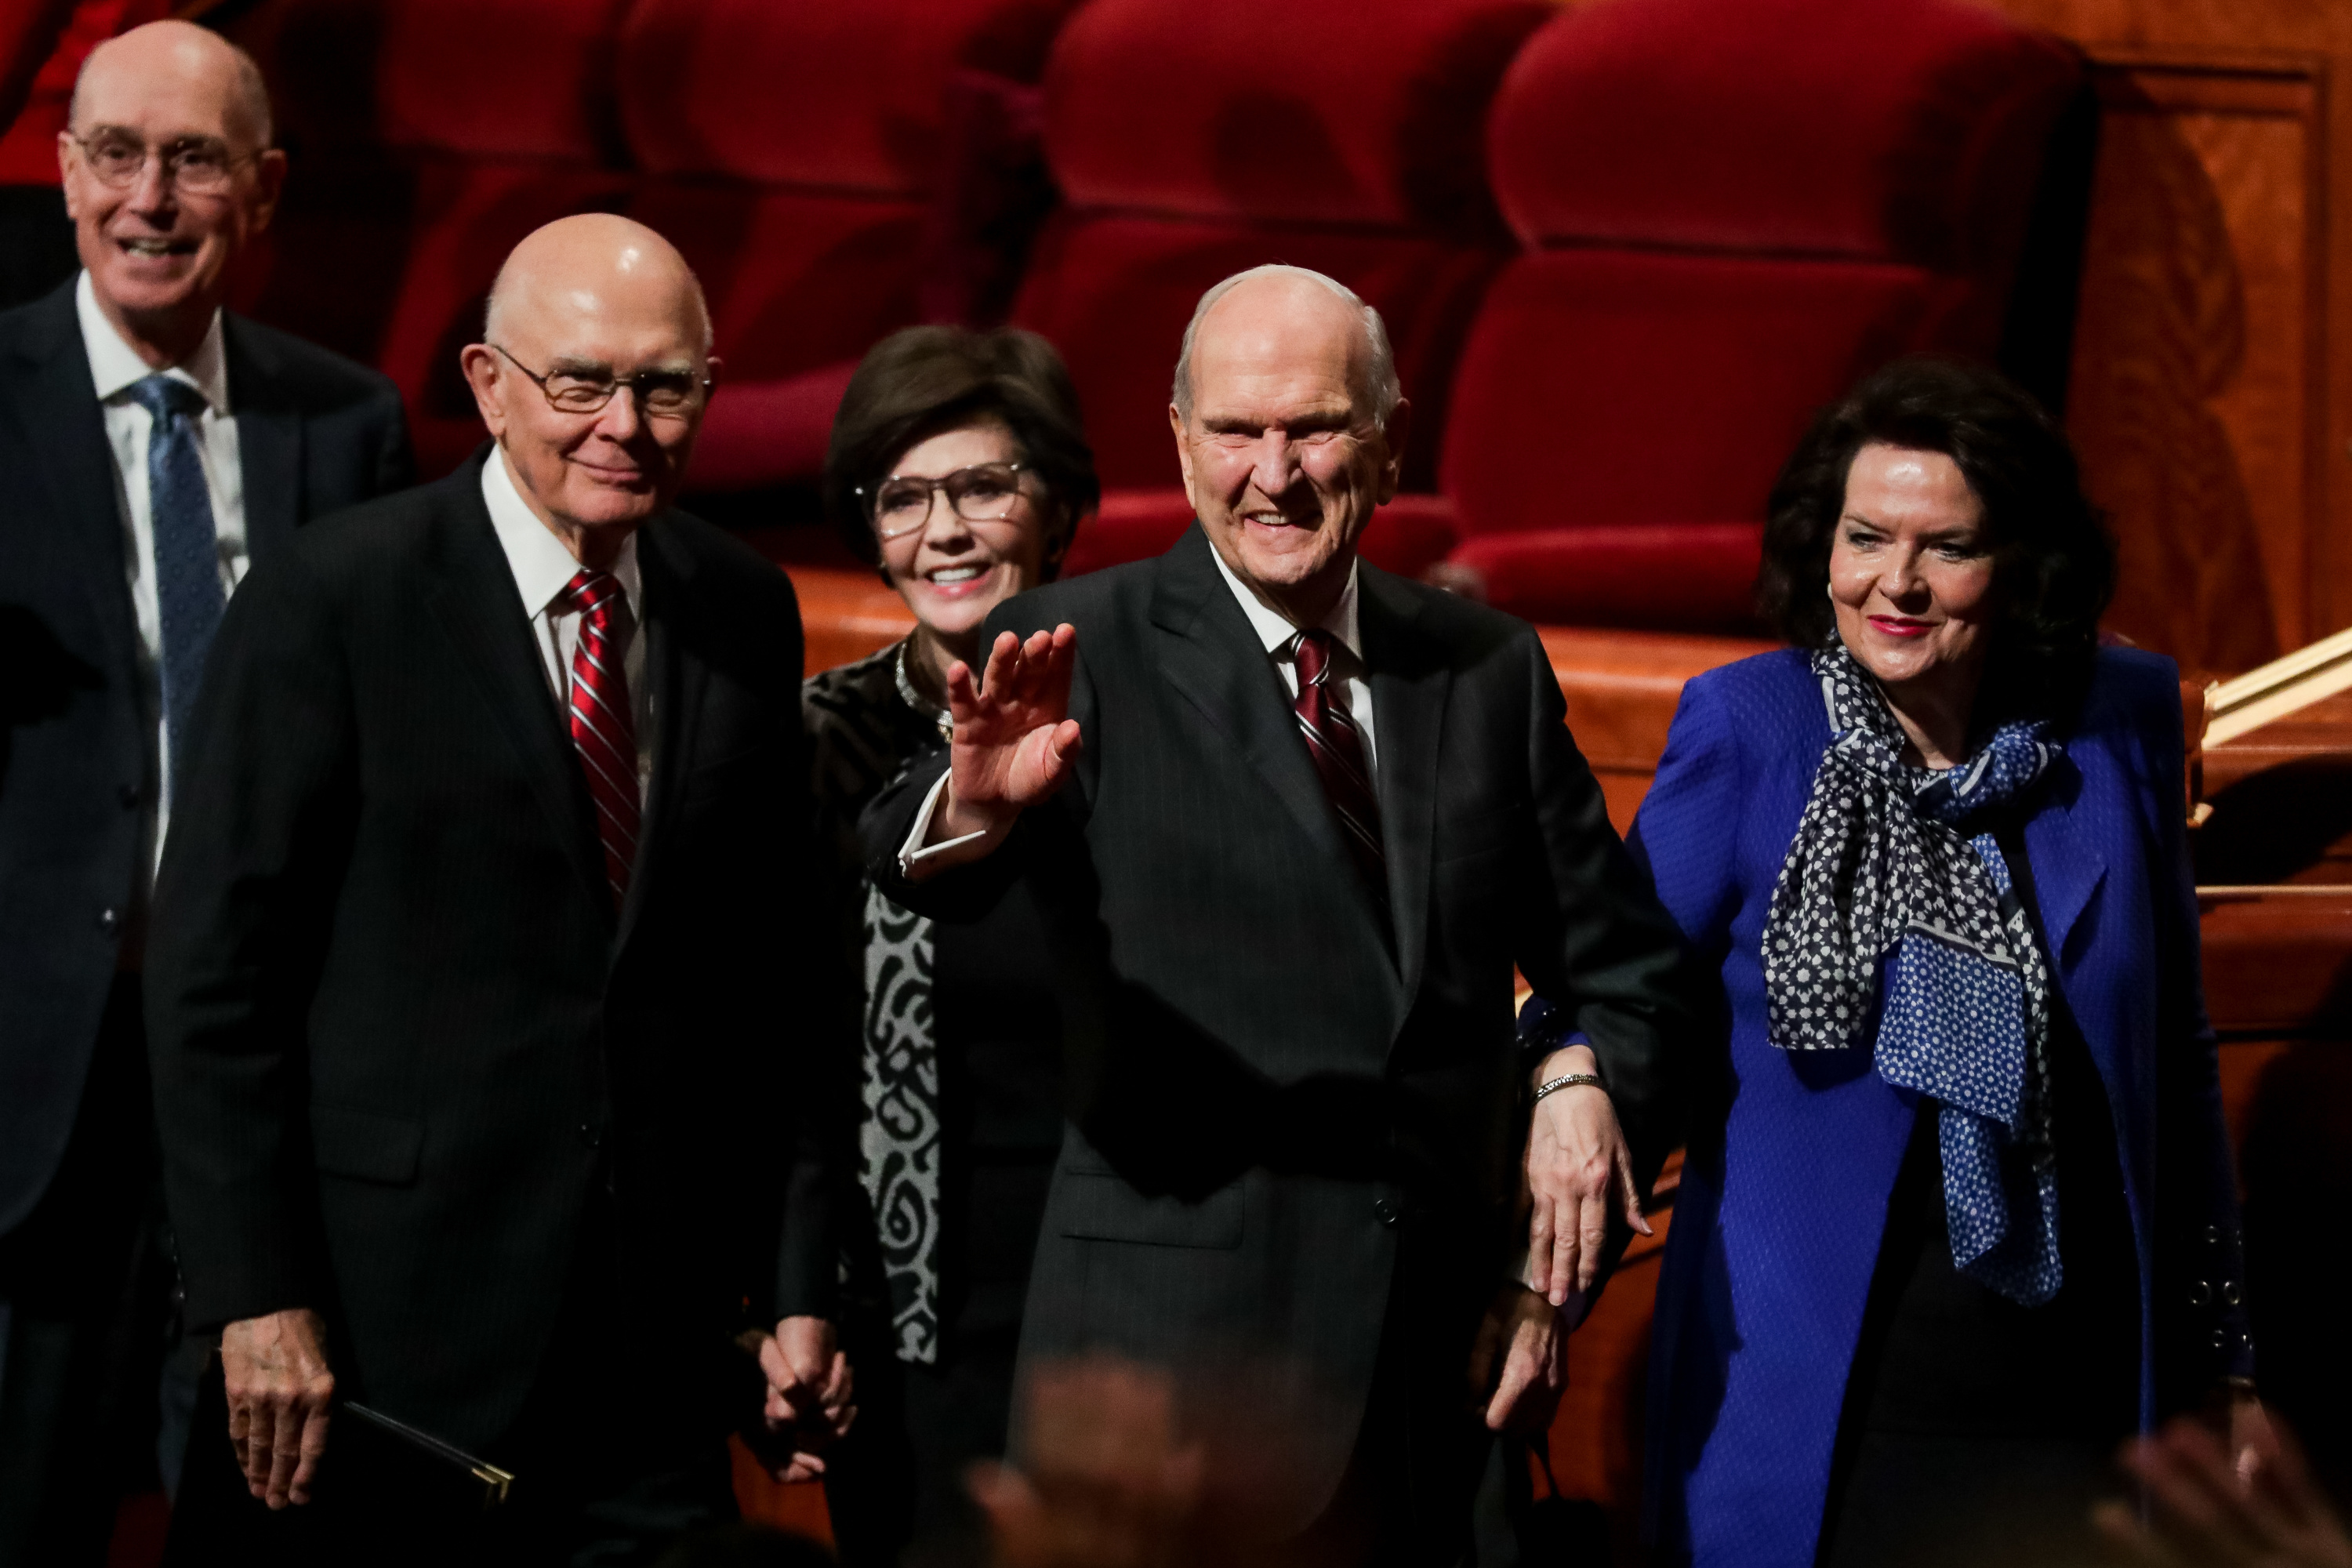 President Henry B. Eyring, second counselor in the First Presidency, President Dallin H. Oaks, first counselor in the First Presidency, his wife, Sister Kristen Oaks, President Russell M. Nelson and his wife, Sister Wendy Nelson, left to right, leave the rostrum at the end of the Saturday afternoon session of the 188th Semiannual General Conference of The Church of Jesus Christ of Latter-day Saints in the Conference Center in Salt Lake City on Saturday, Oct. 6, 2018.